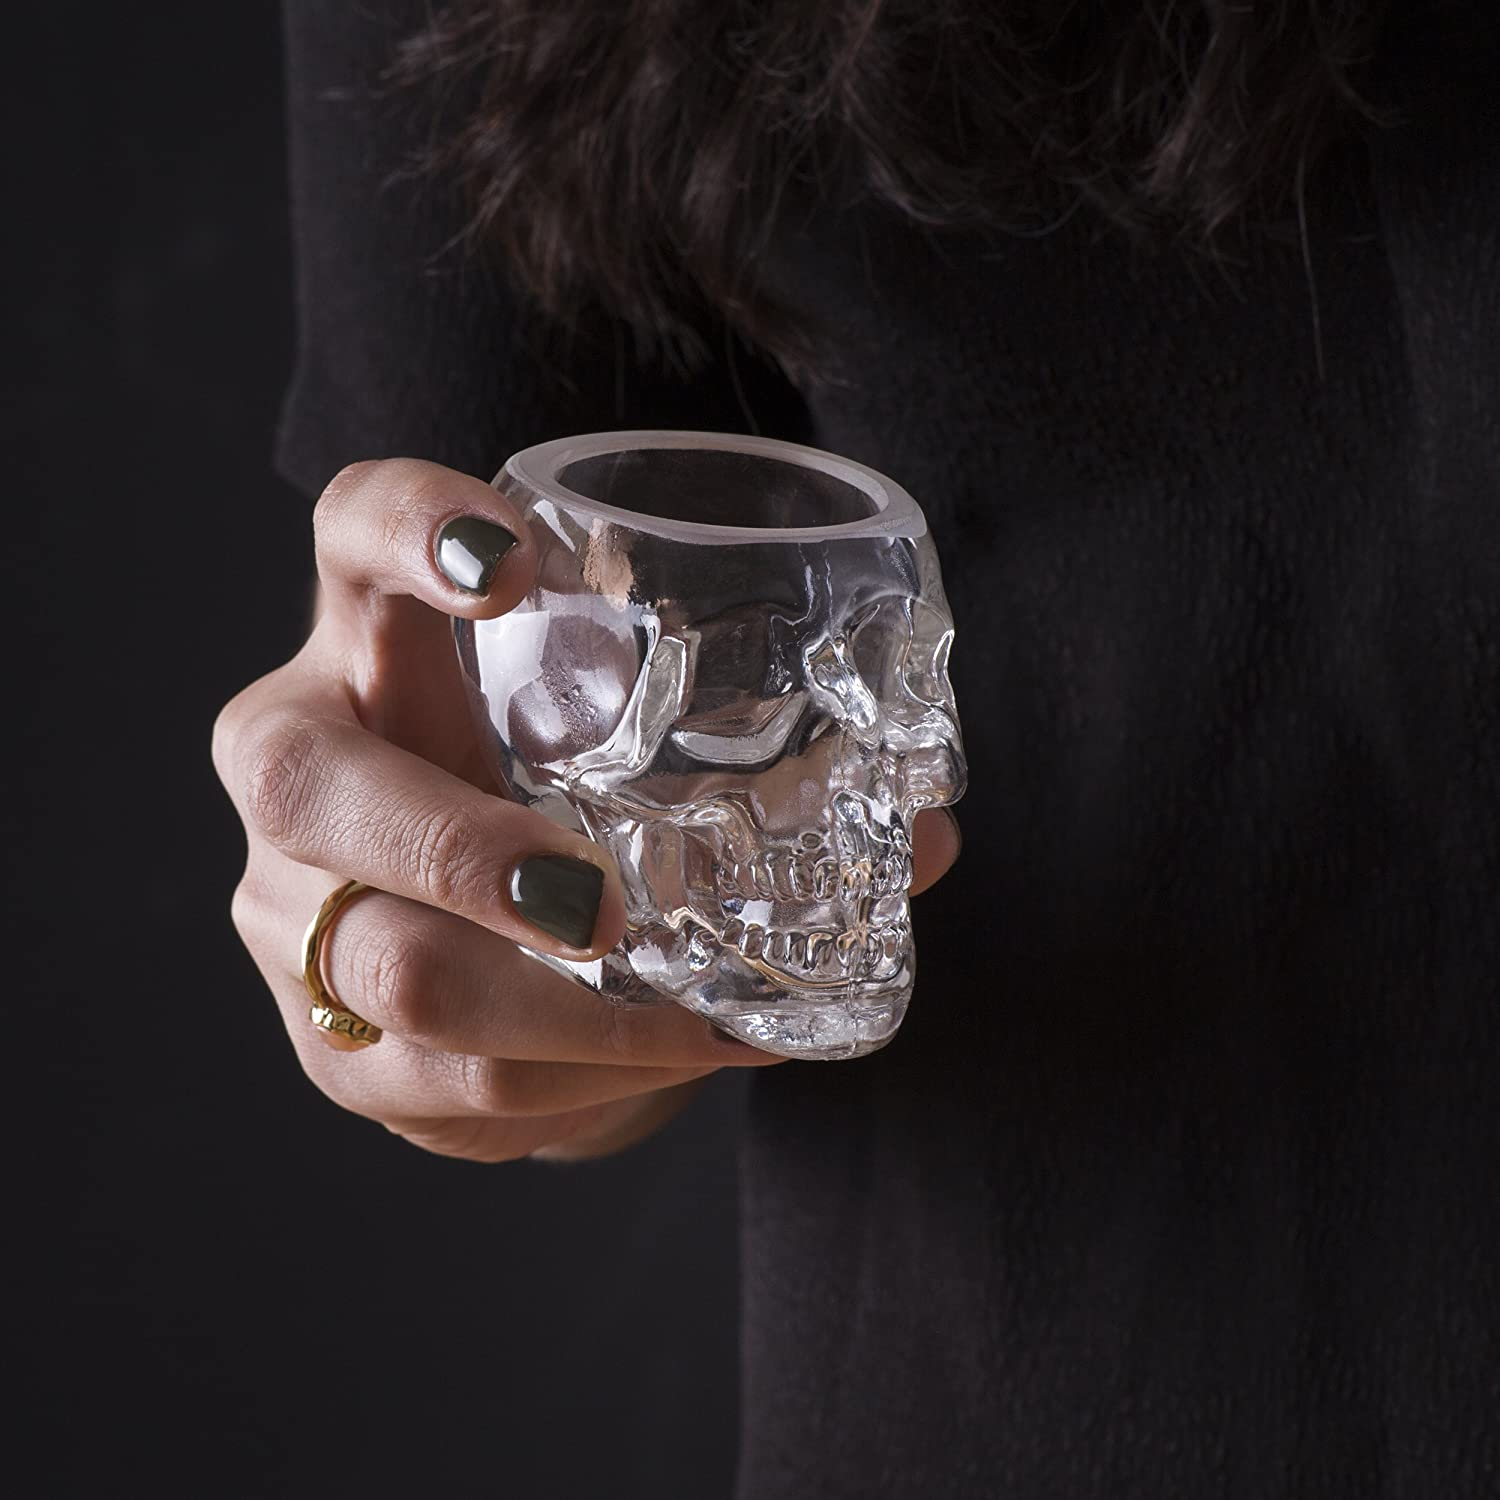 Scotch and Vodka Shot Glass Large Skull Face Decanter with Skull Shot Glasses Use Skull Head Cup For A Whiskey 25 Ounce Decanter 2 Ounces Shot Glass